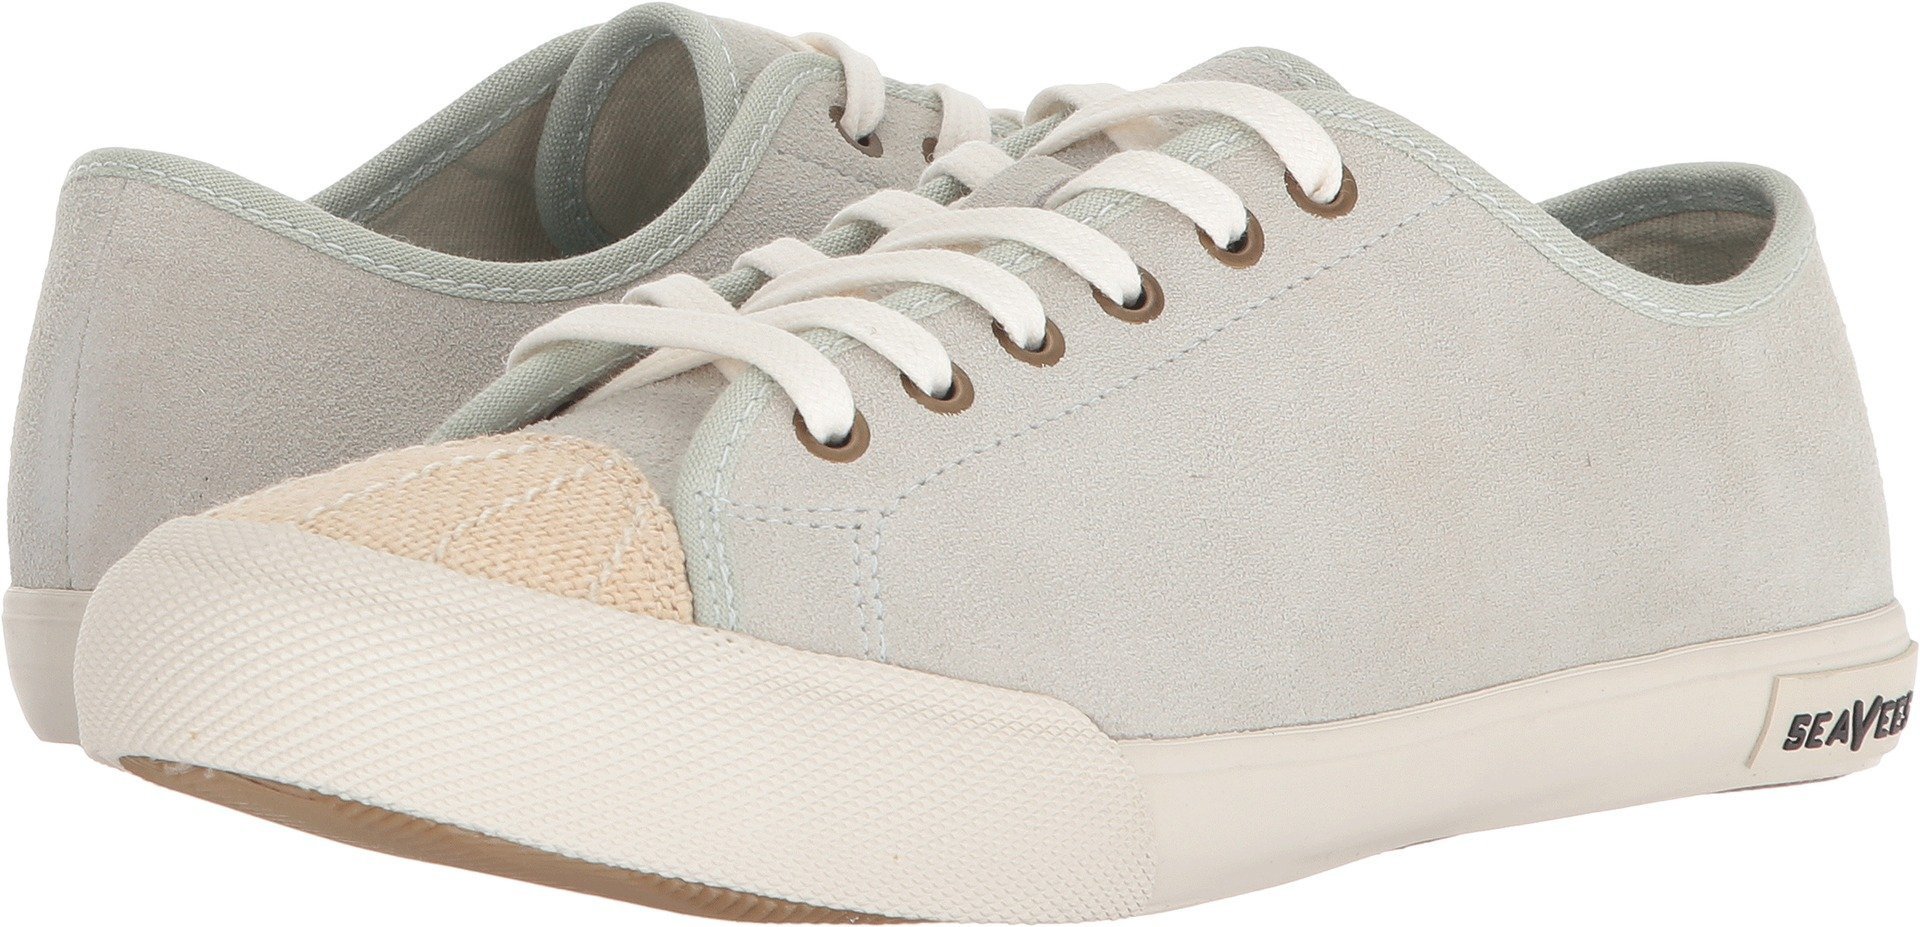 SeaVees Women's Army Issue Sneaker Low Sea Spray 9.5 B US